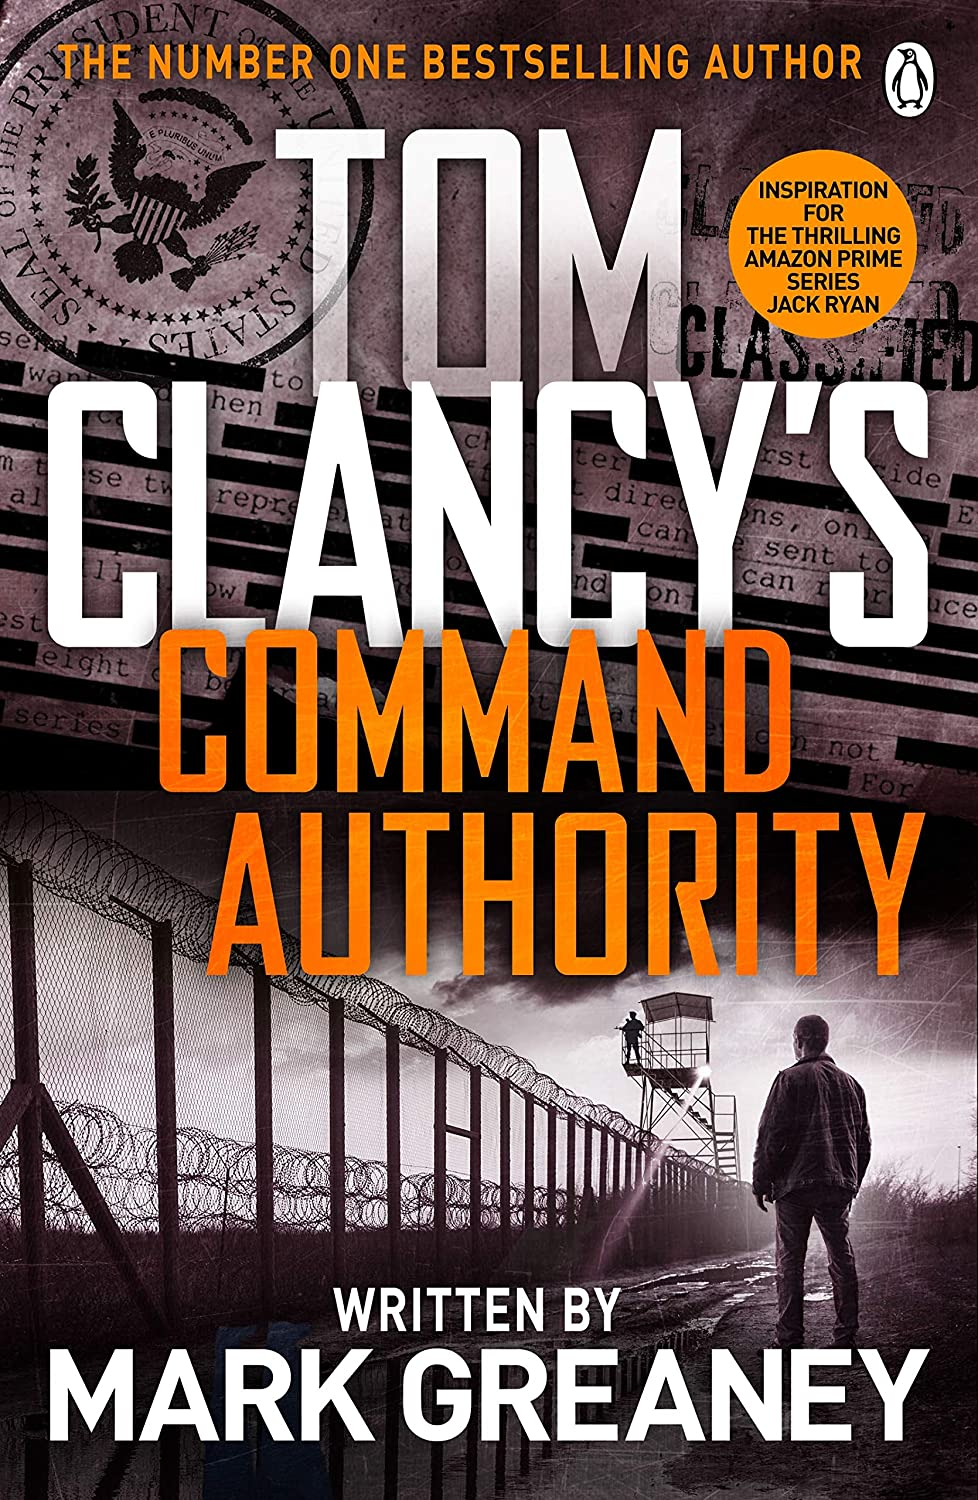 Command Authority: INSPIRATION FOR THE THRILLING AMAZON ...